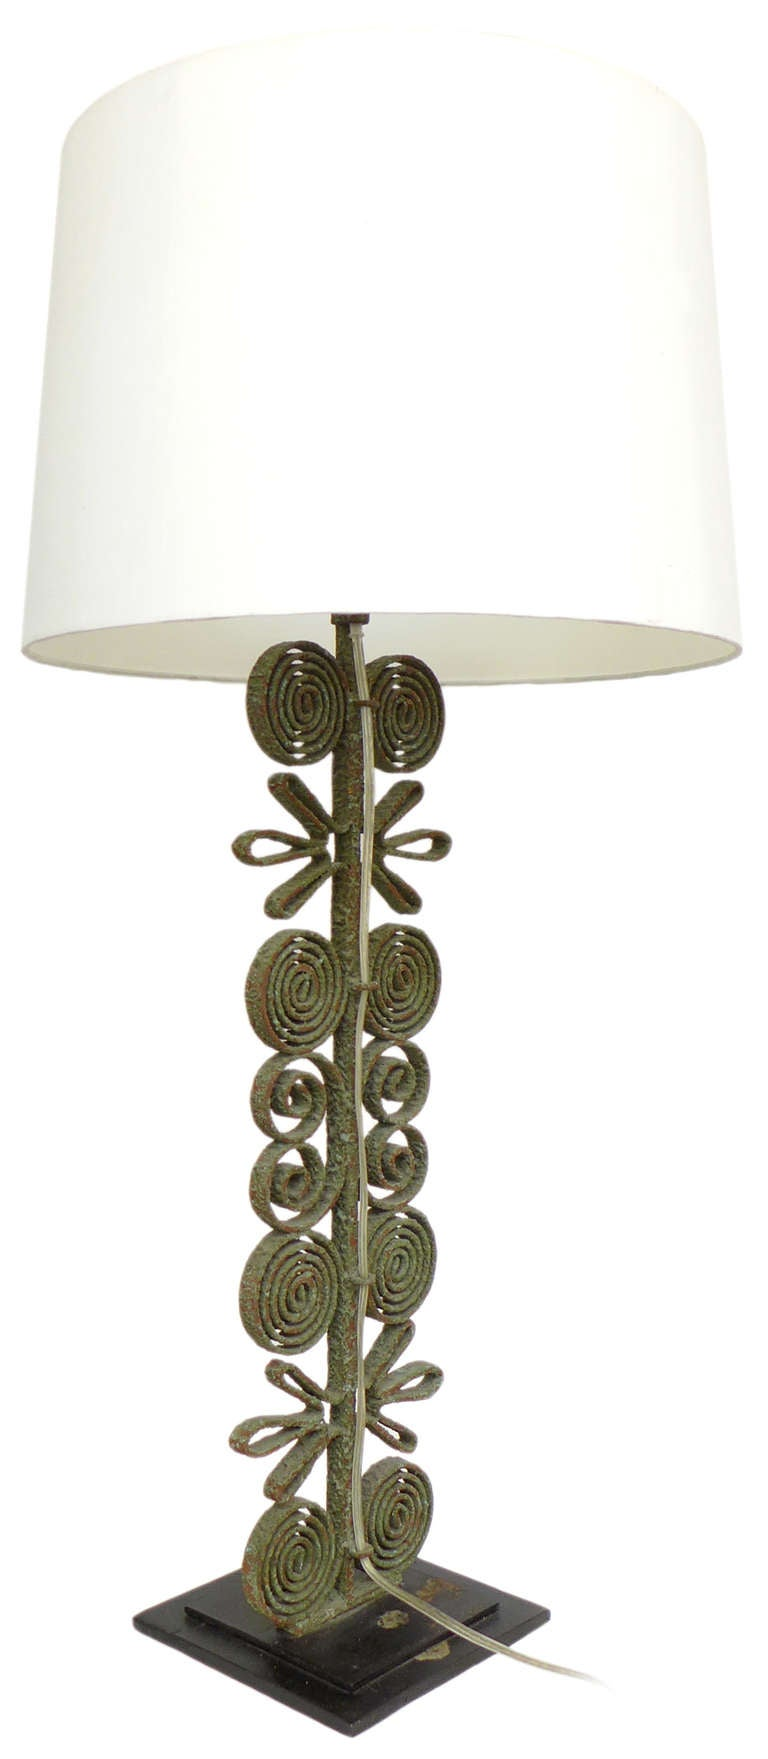 this spectacular wrought iron table lamp is no longer available. Black Bedroom Furniture Sets. Home Design Ideas